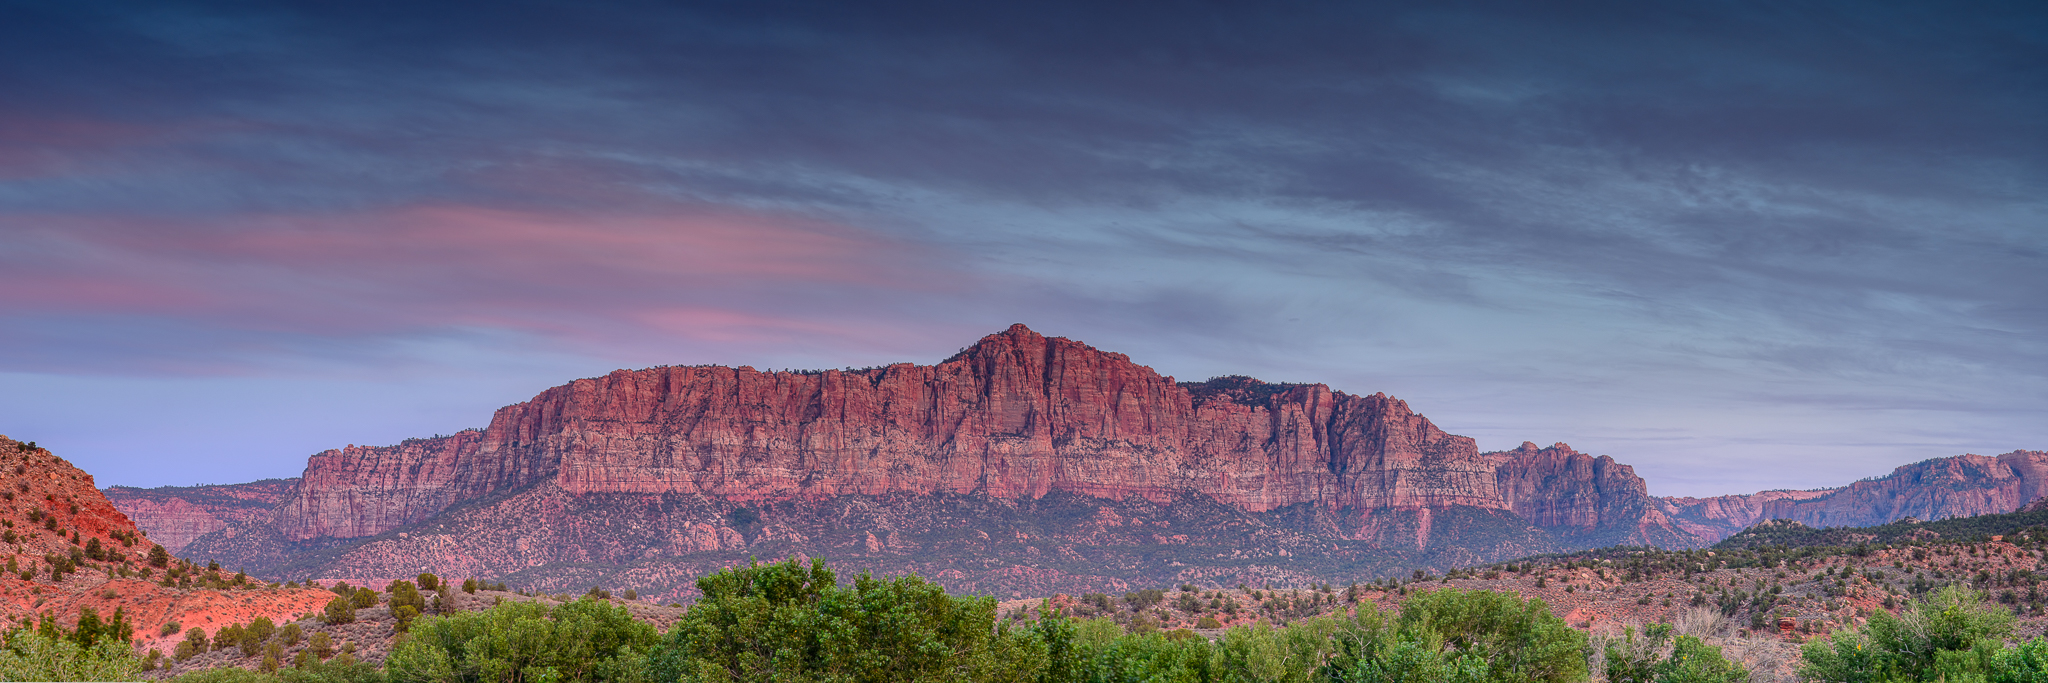 Waning light gives way to a whole spectrum of unseen and brilliant desert colors in Zion National Park, UT.